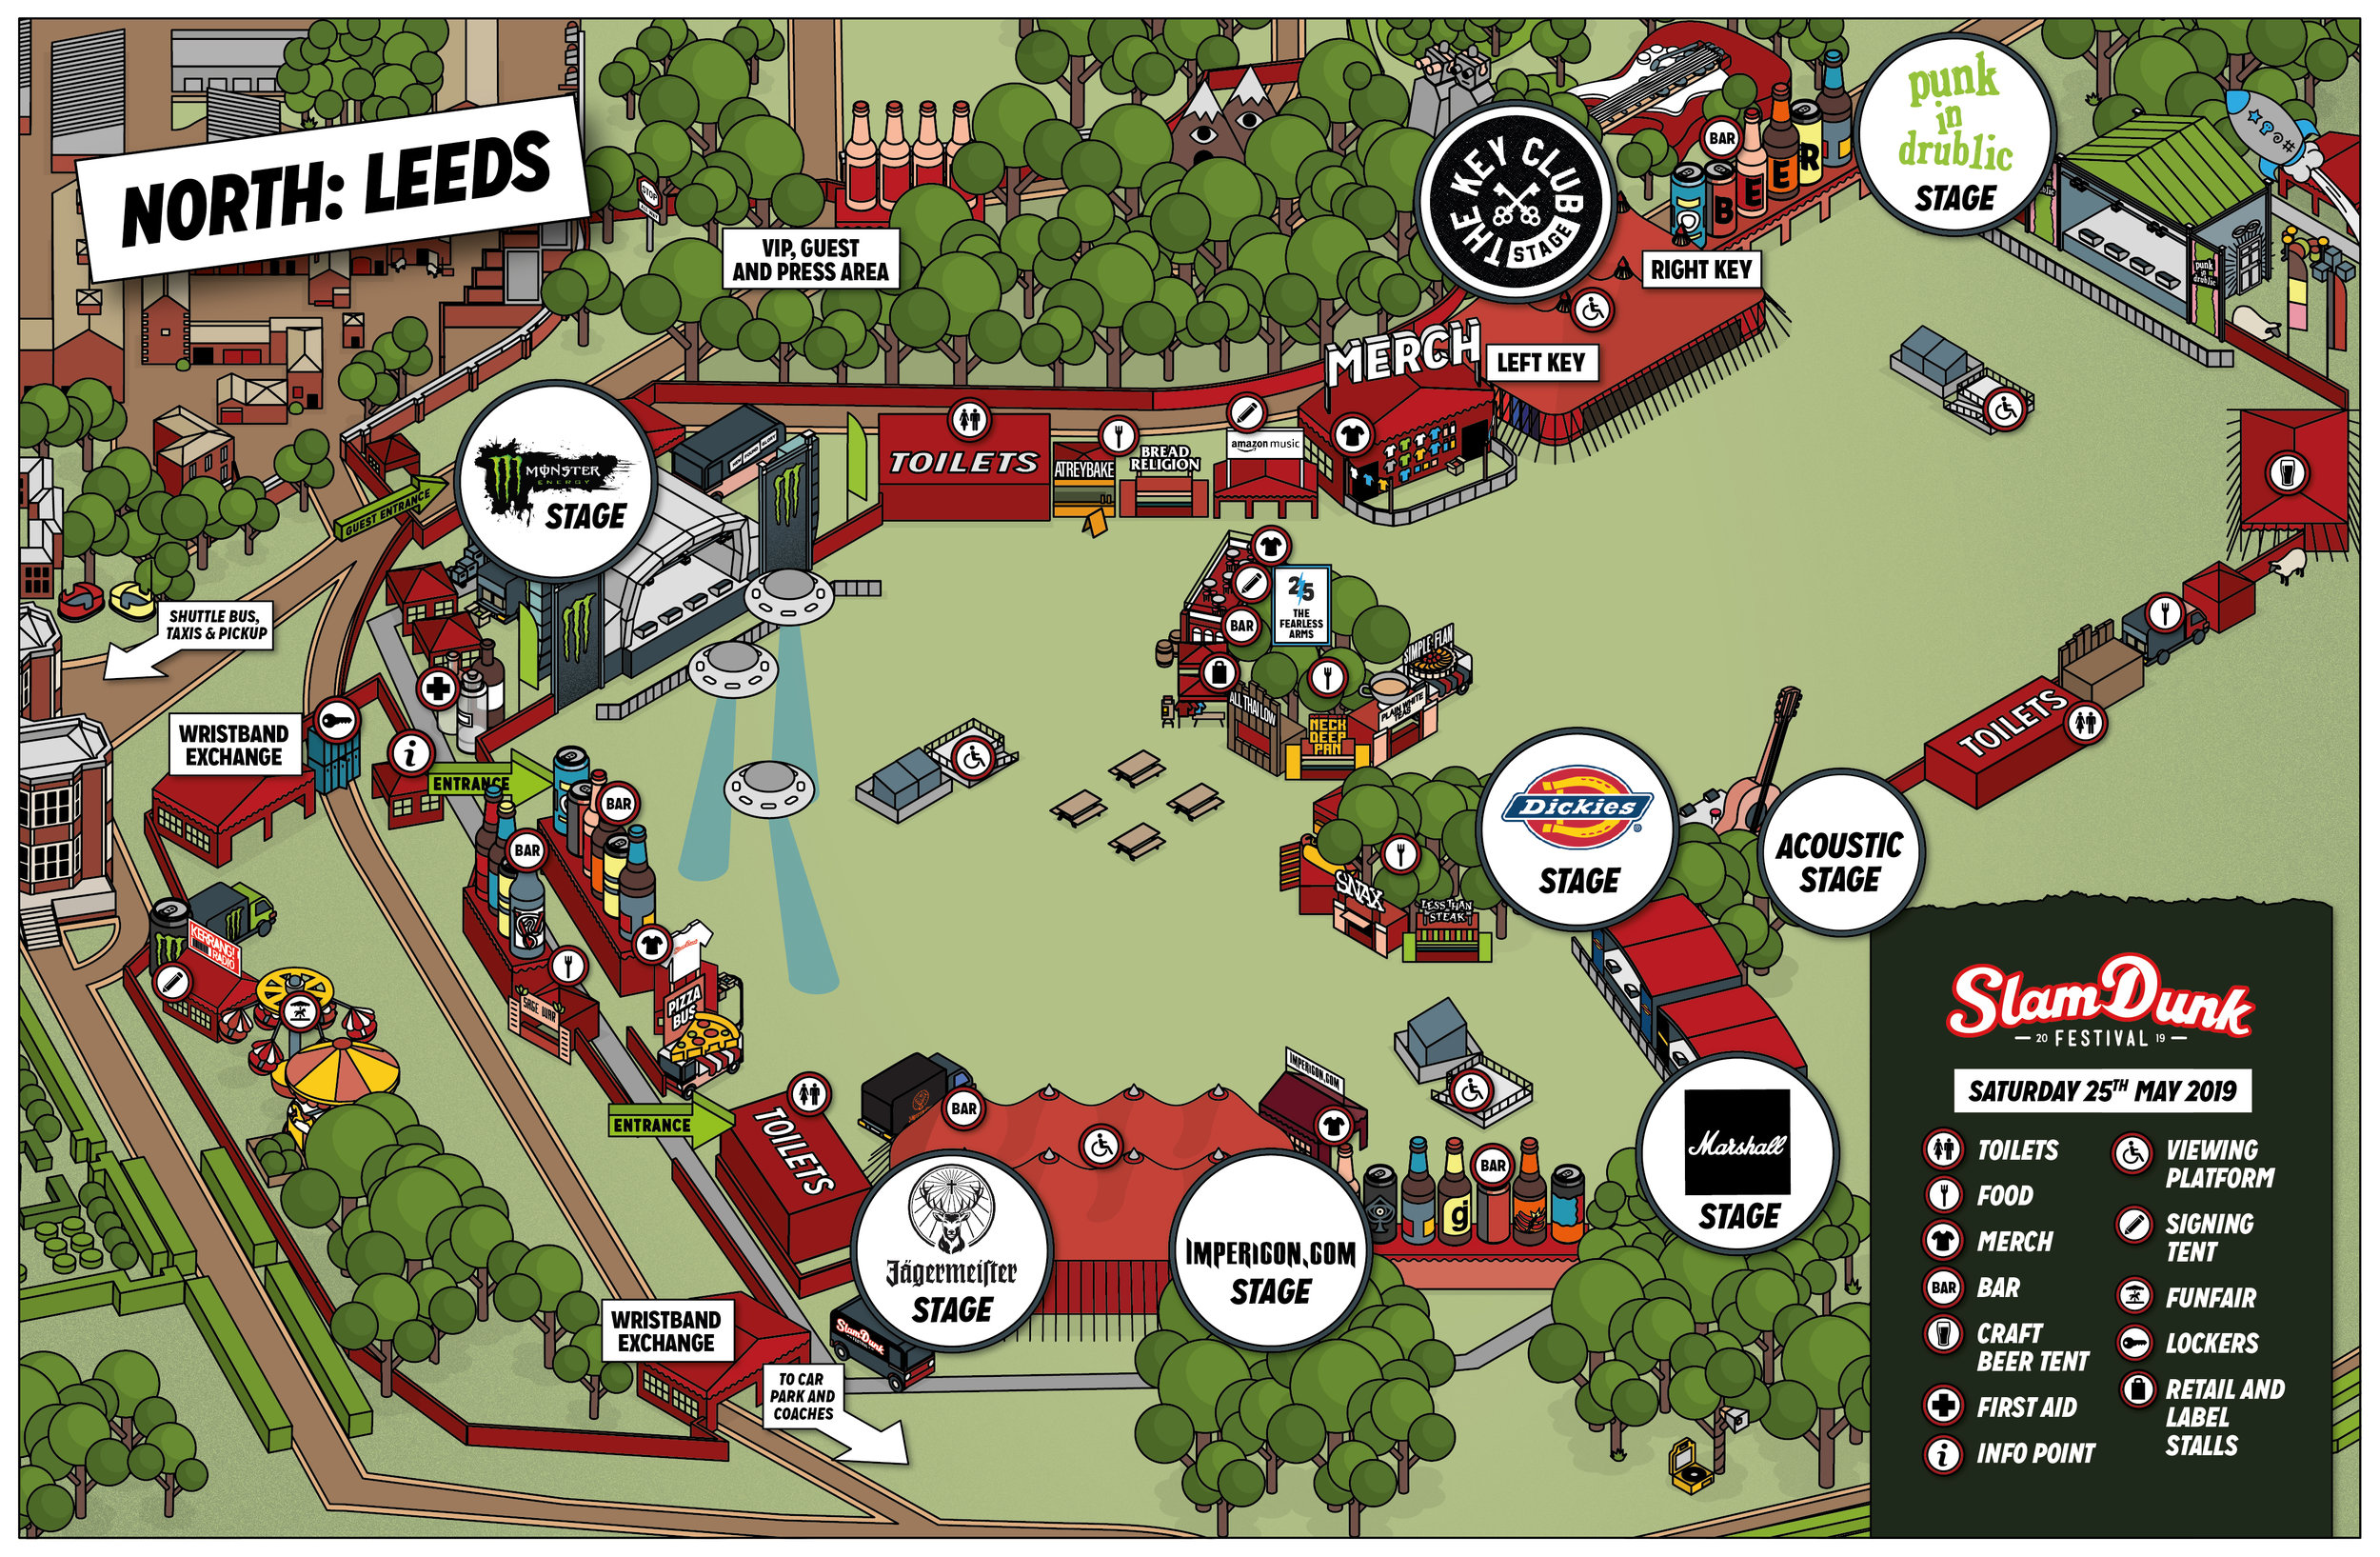 Slam Dunk North Site Map (Subject to Change)